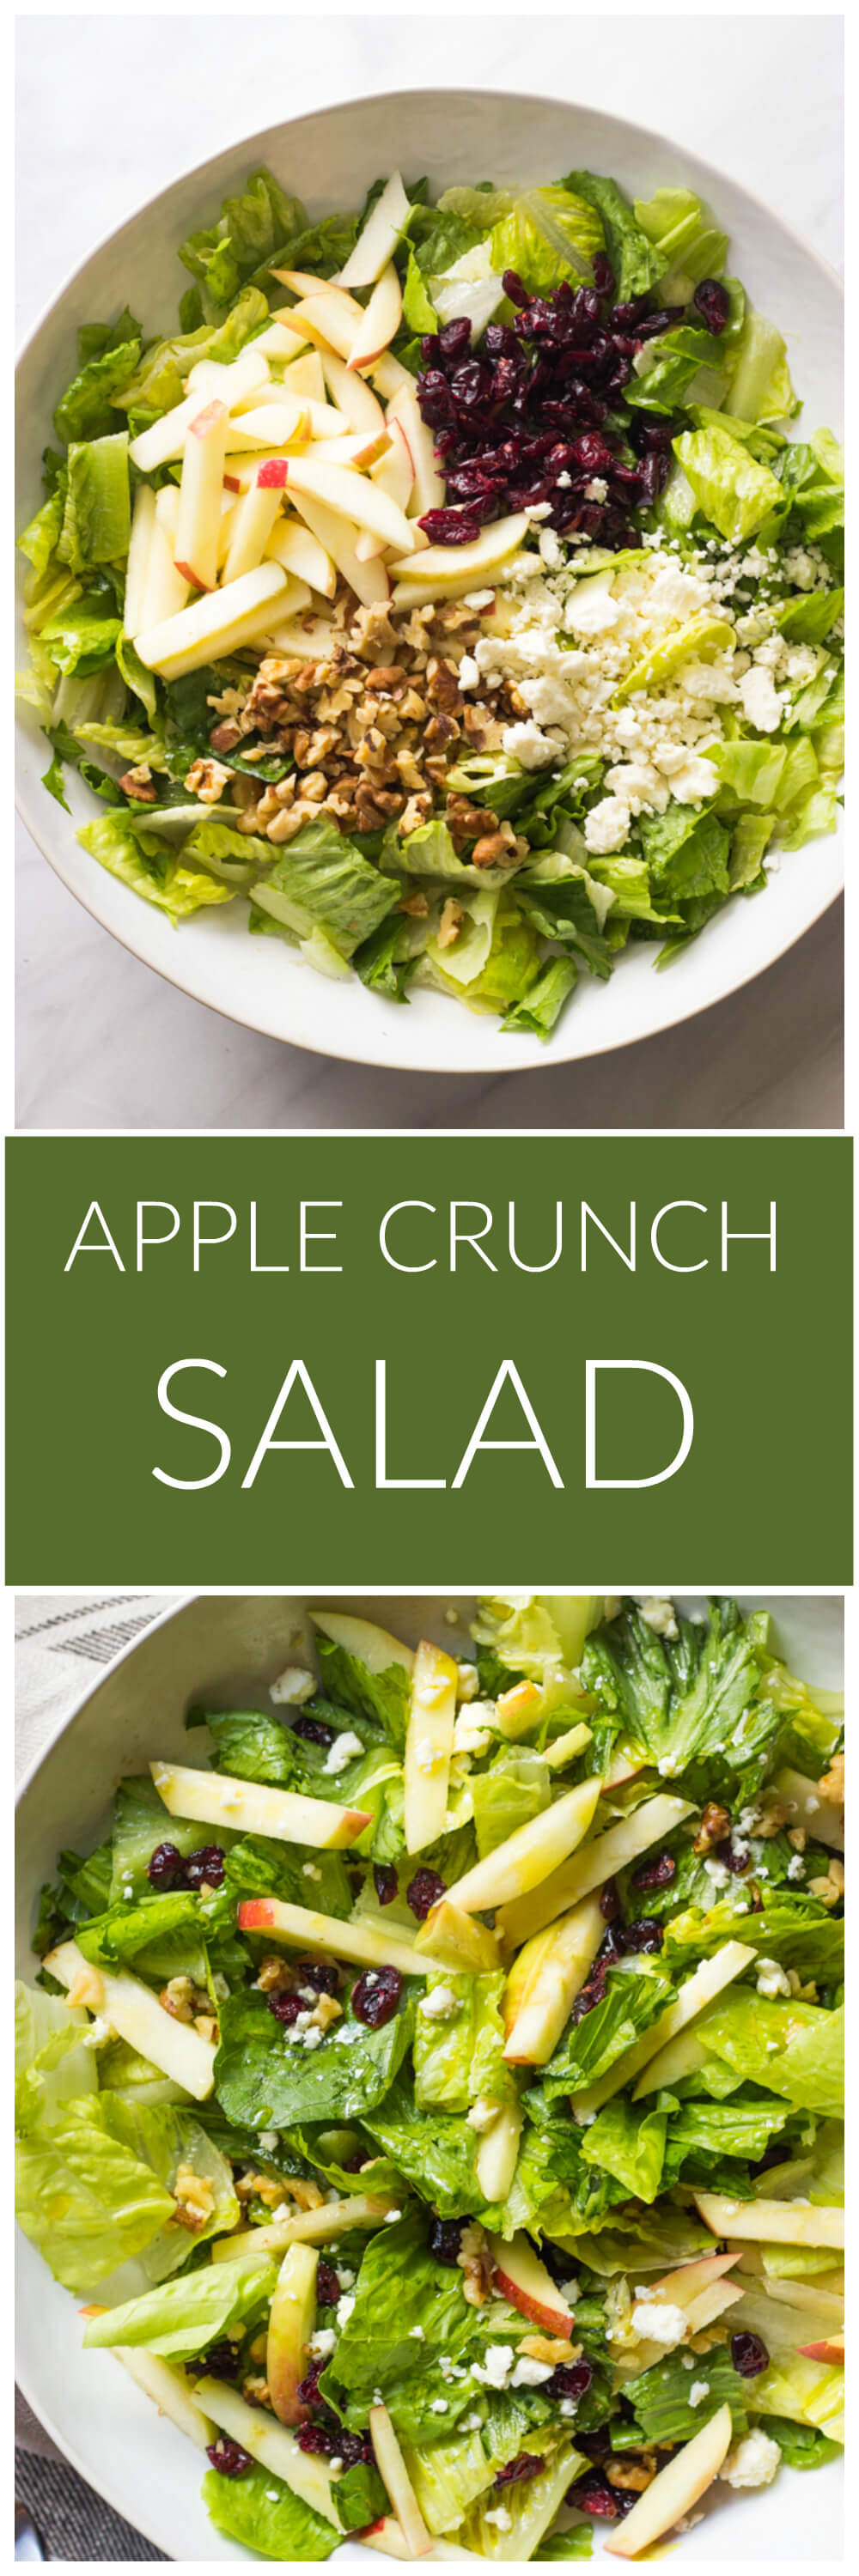 Apple Crunch Salad - simple yet flavorful must try fall salad! Goes with everything | littlebroken.com @littlebroken